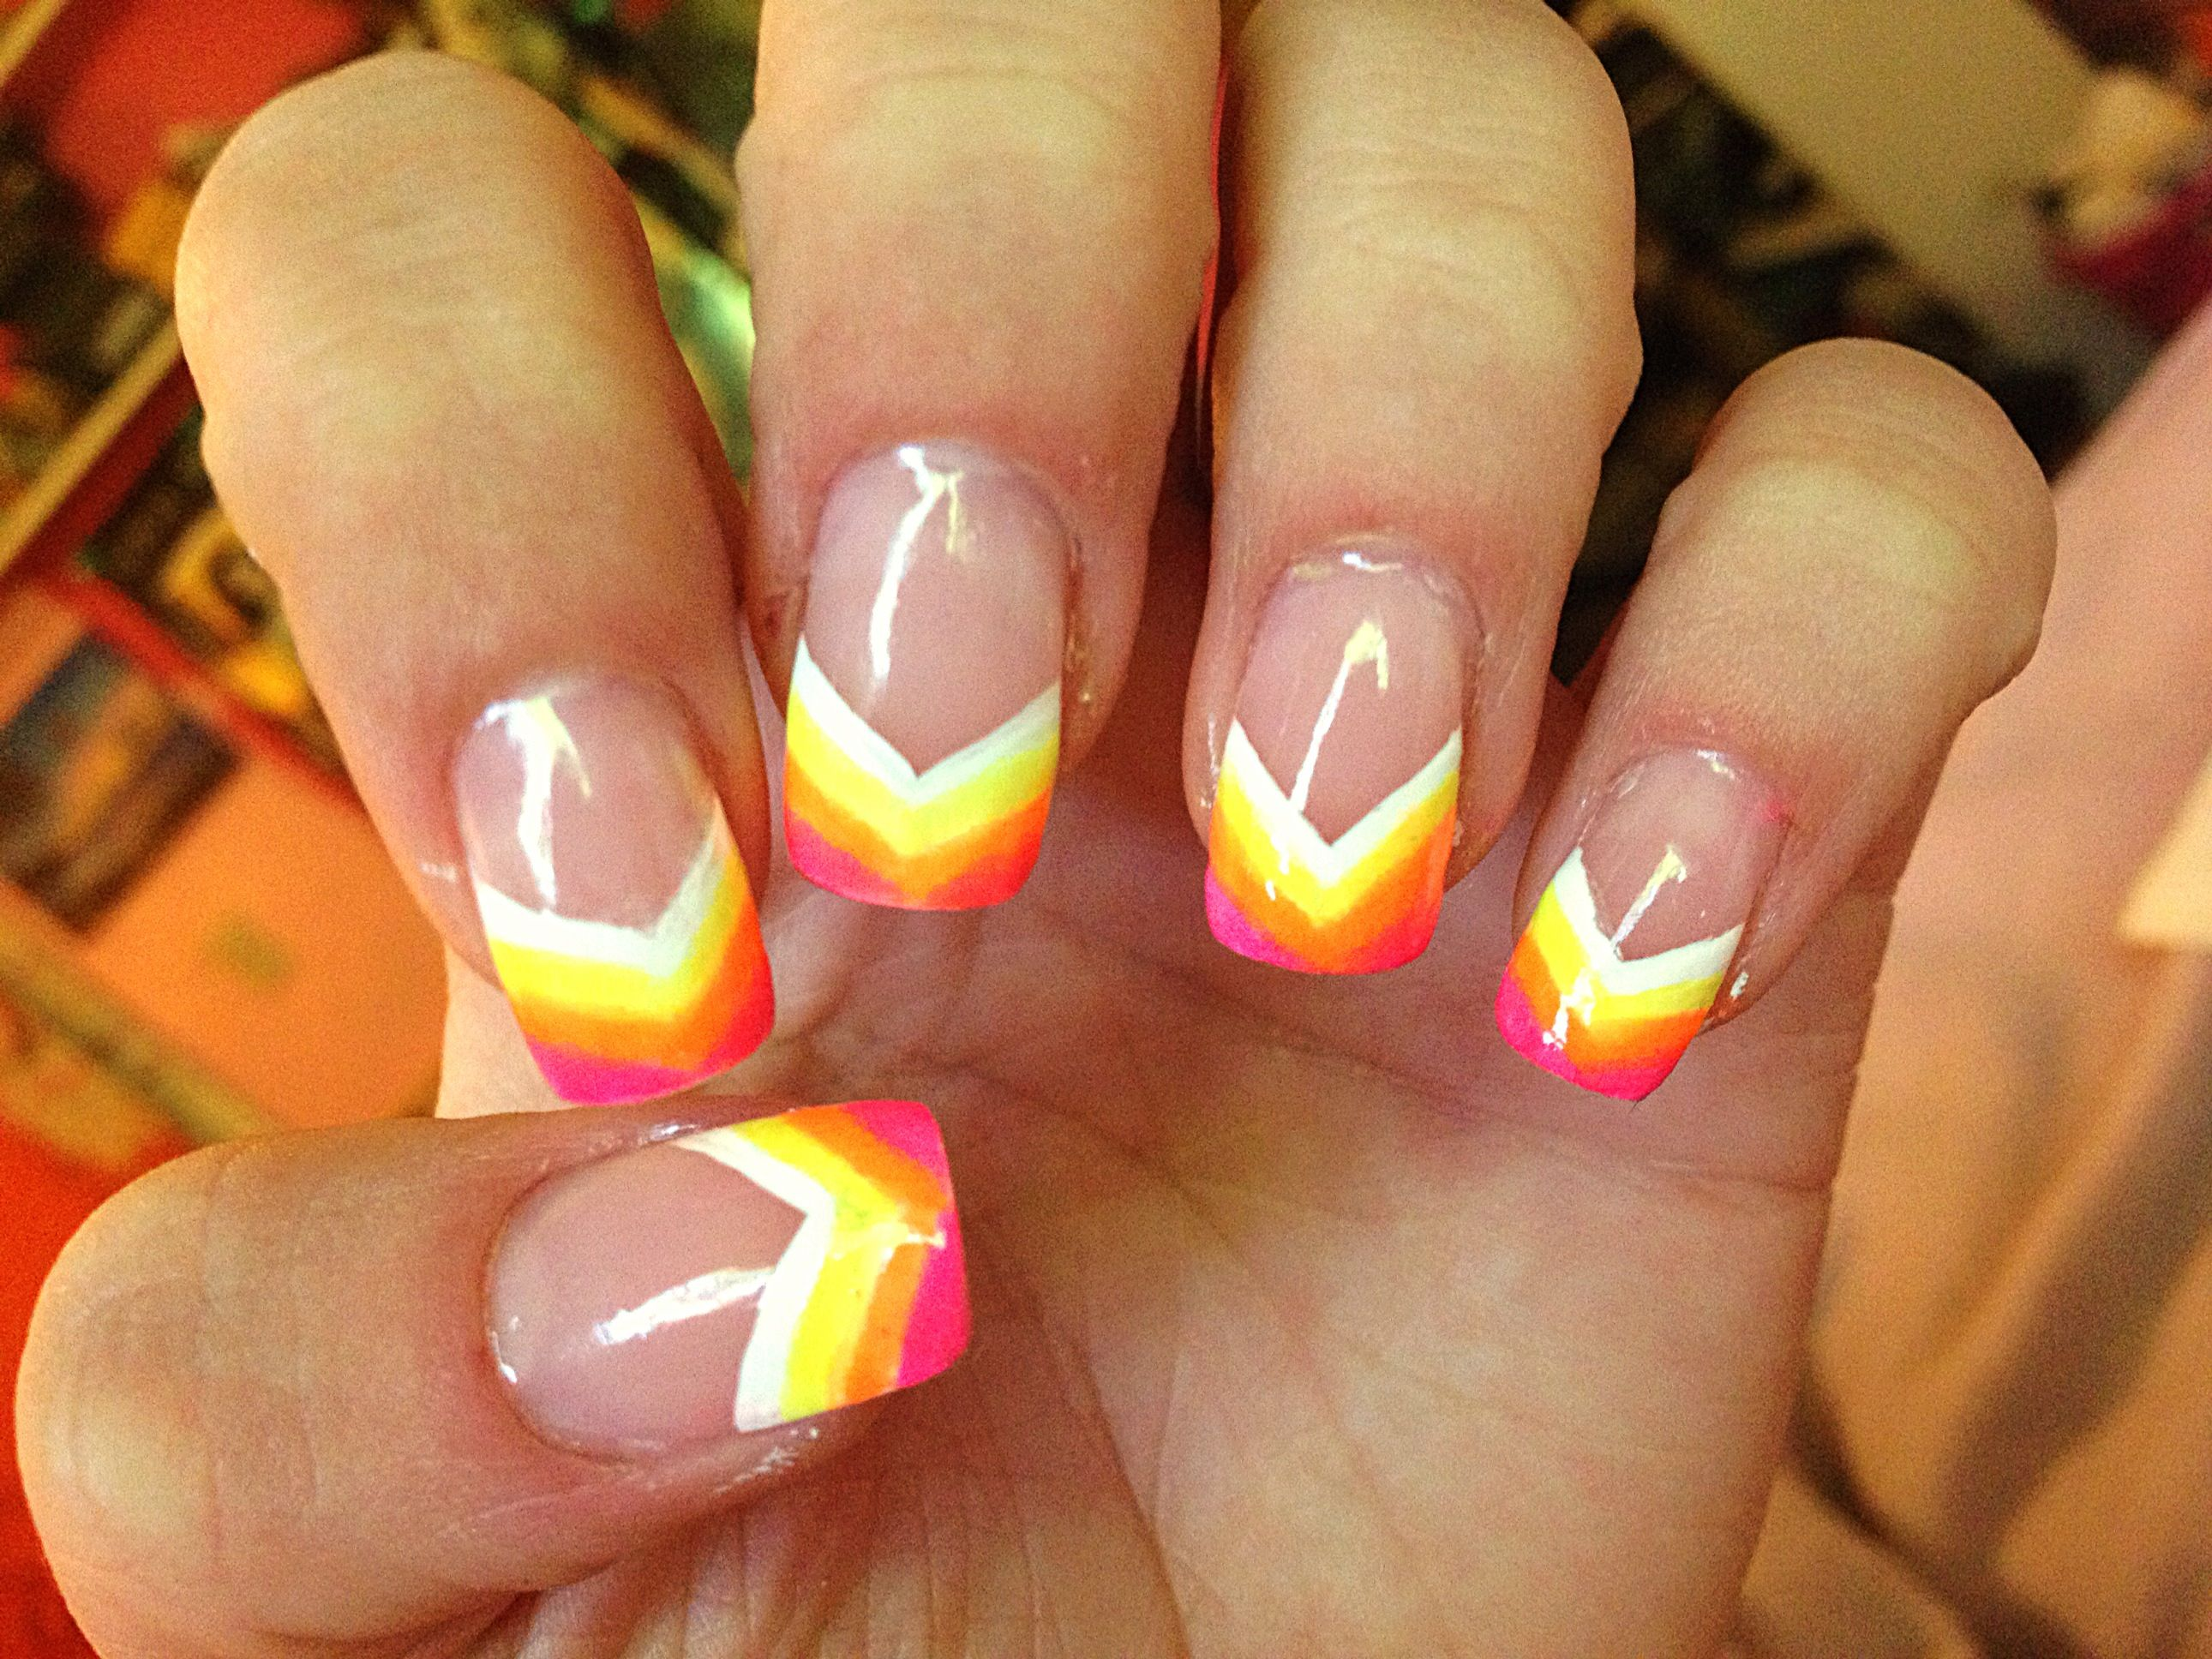 Neon Rainbow Painted Nail Tips Acrylic Design Art Great For The Summer